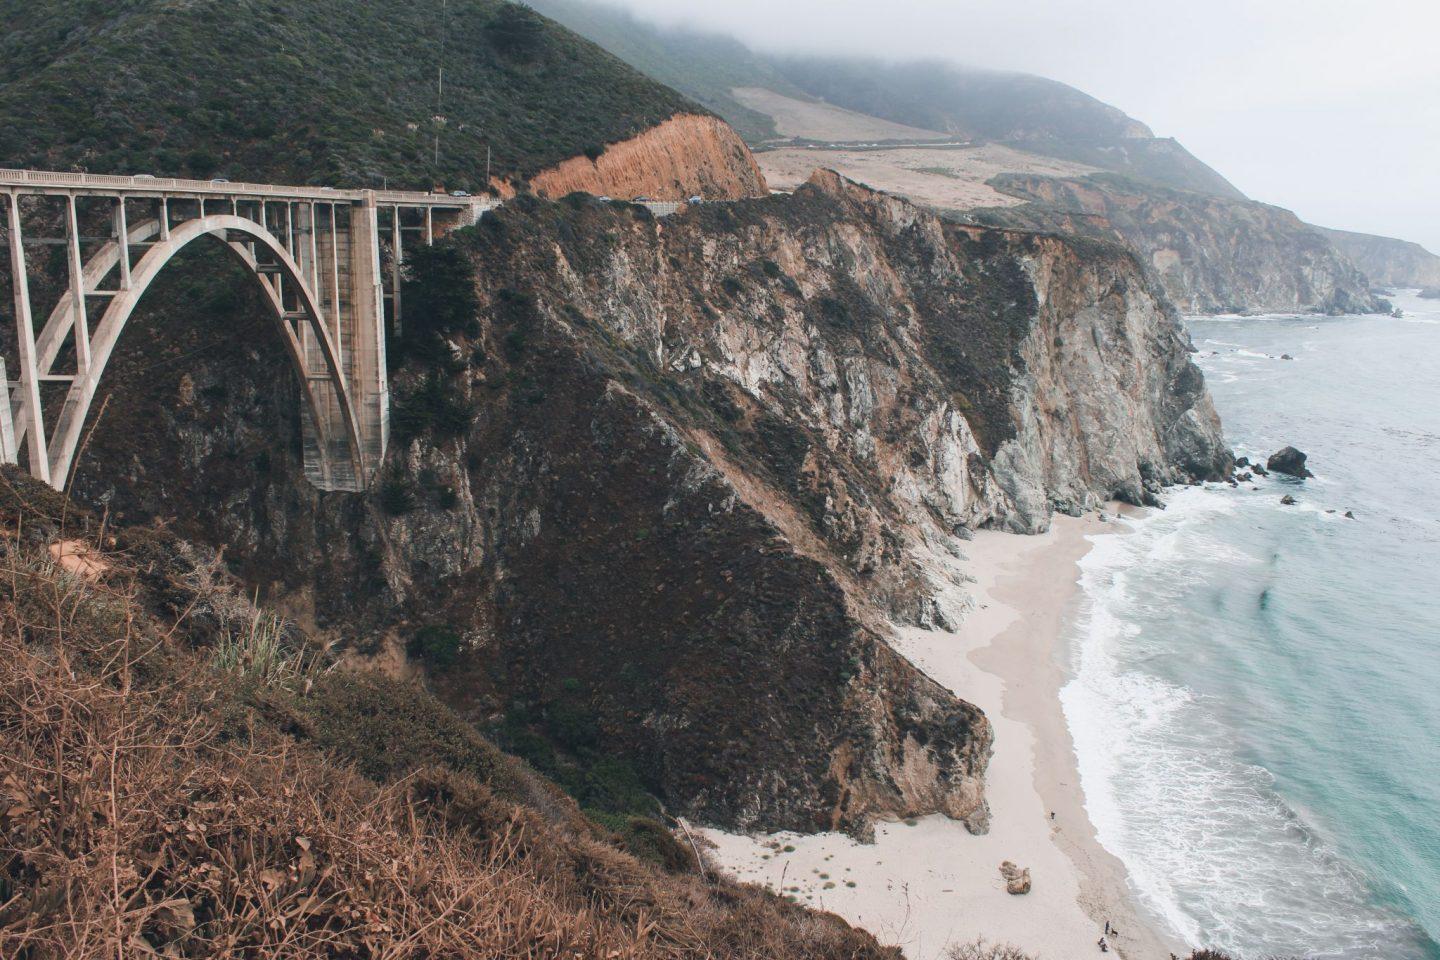 Travel wish list: Bixby Bridge by Big Sur, California